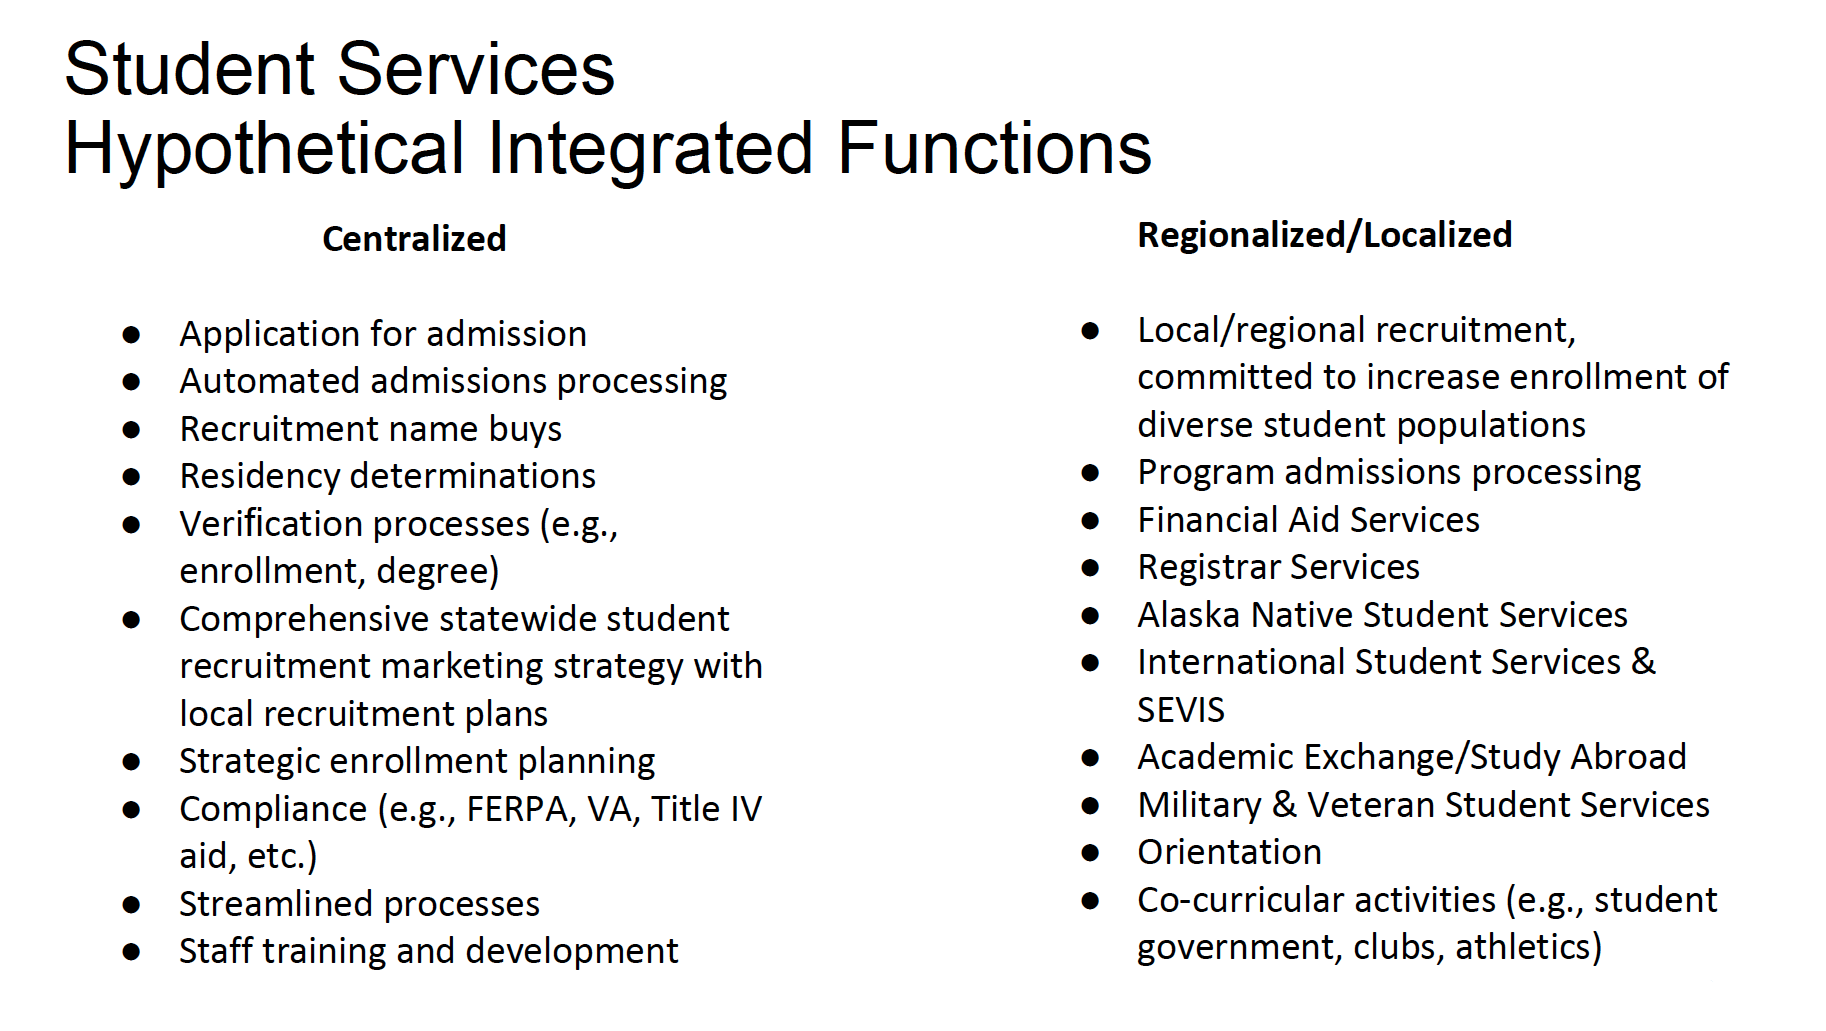 Hypothetical student services functions